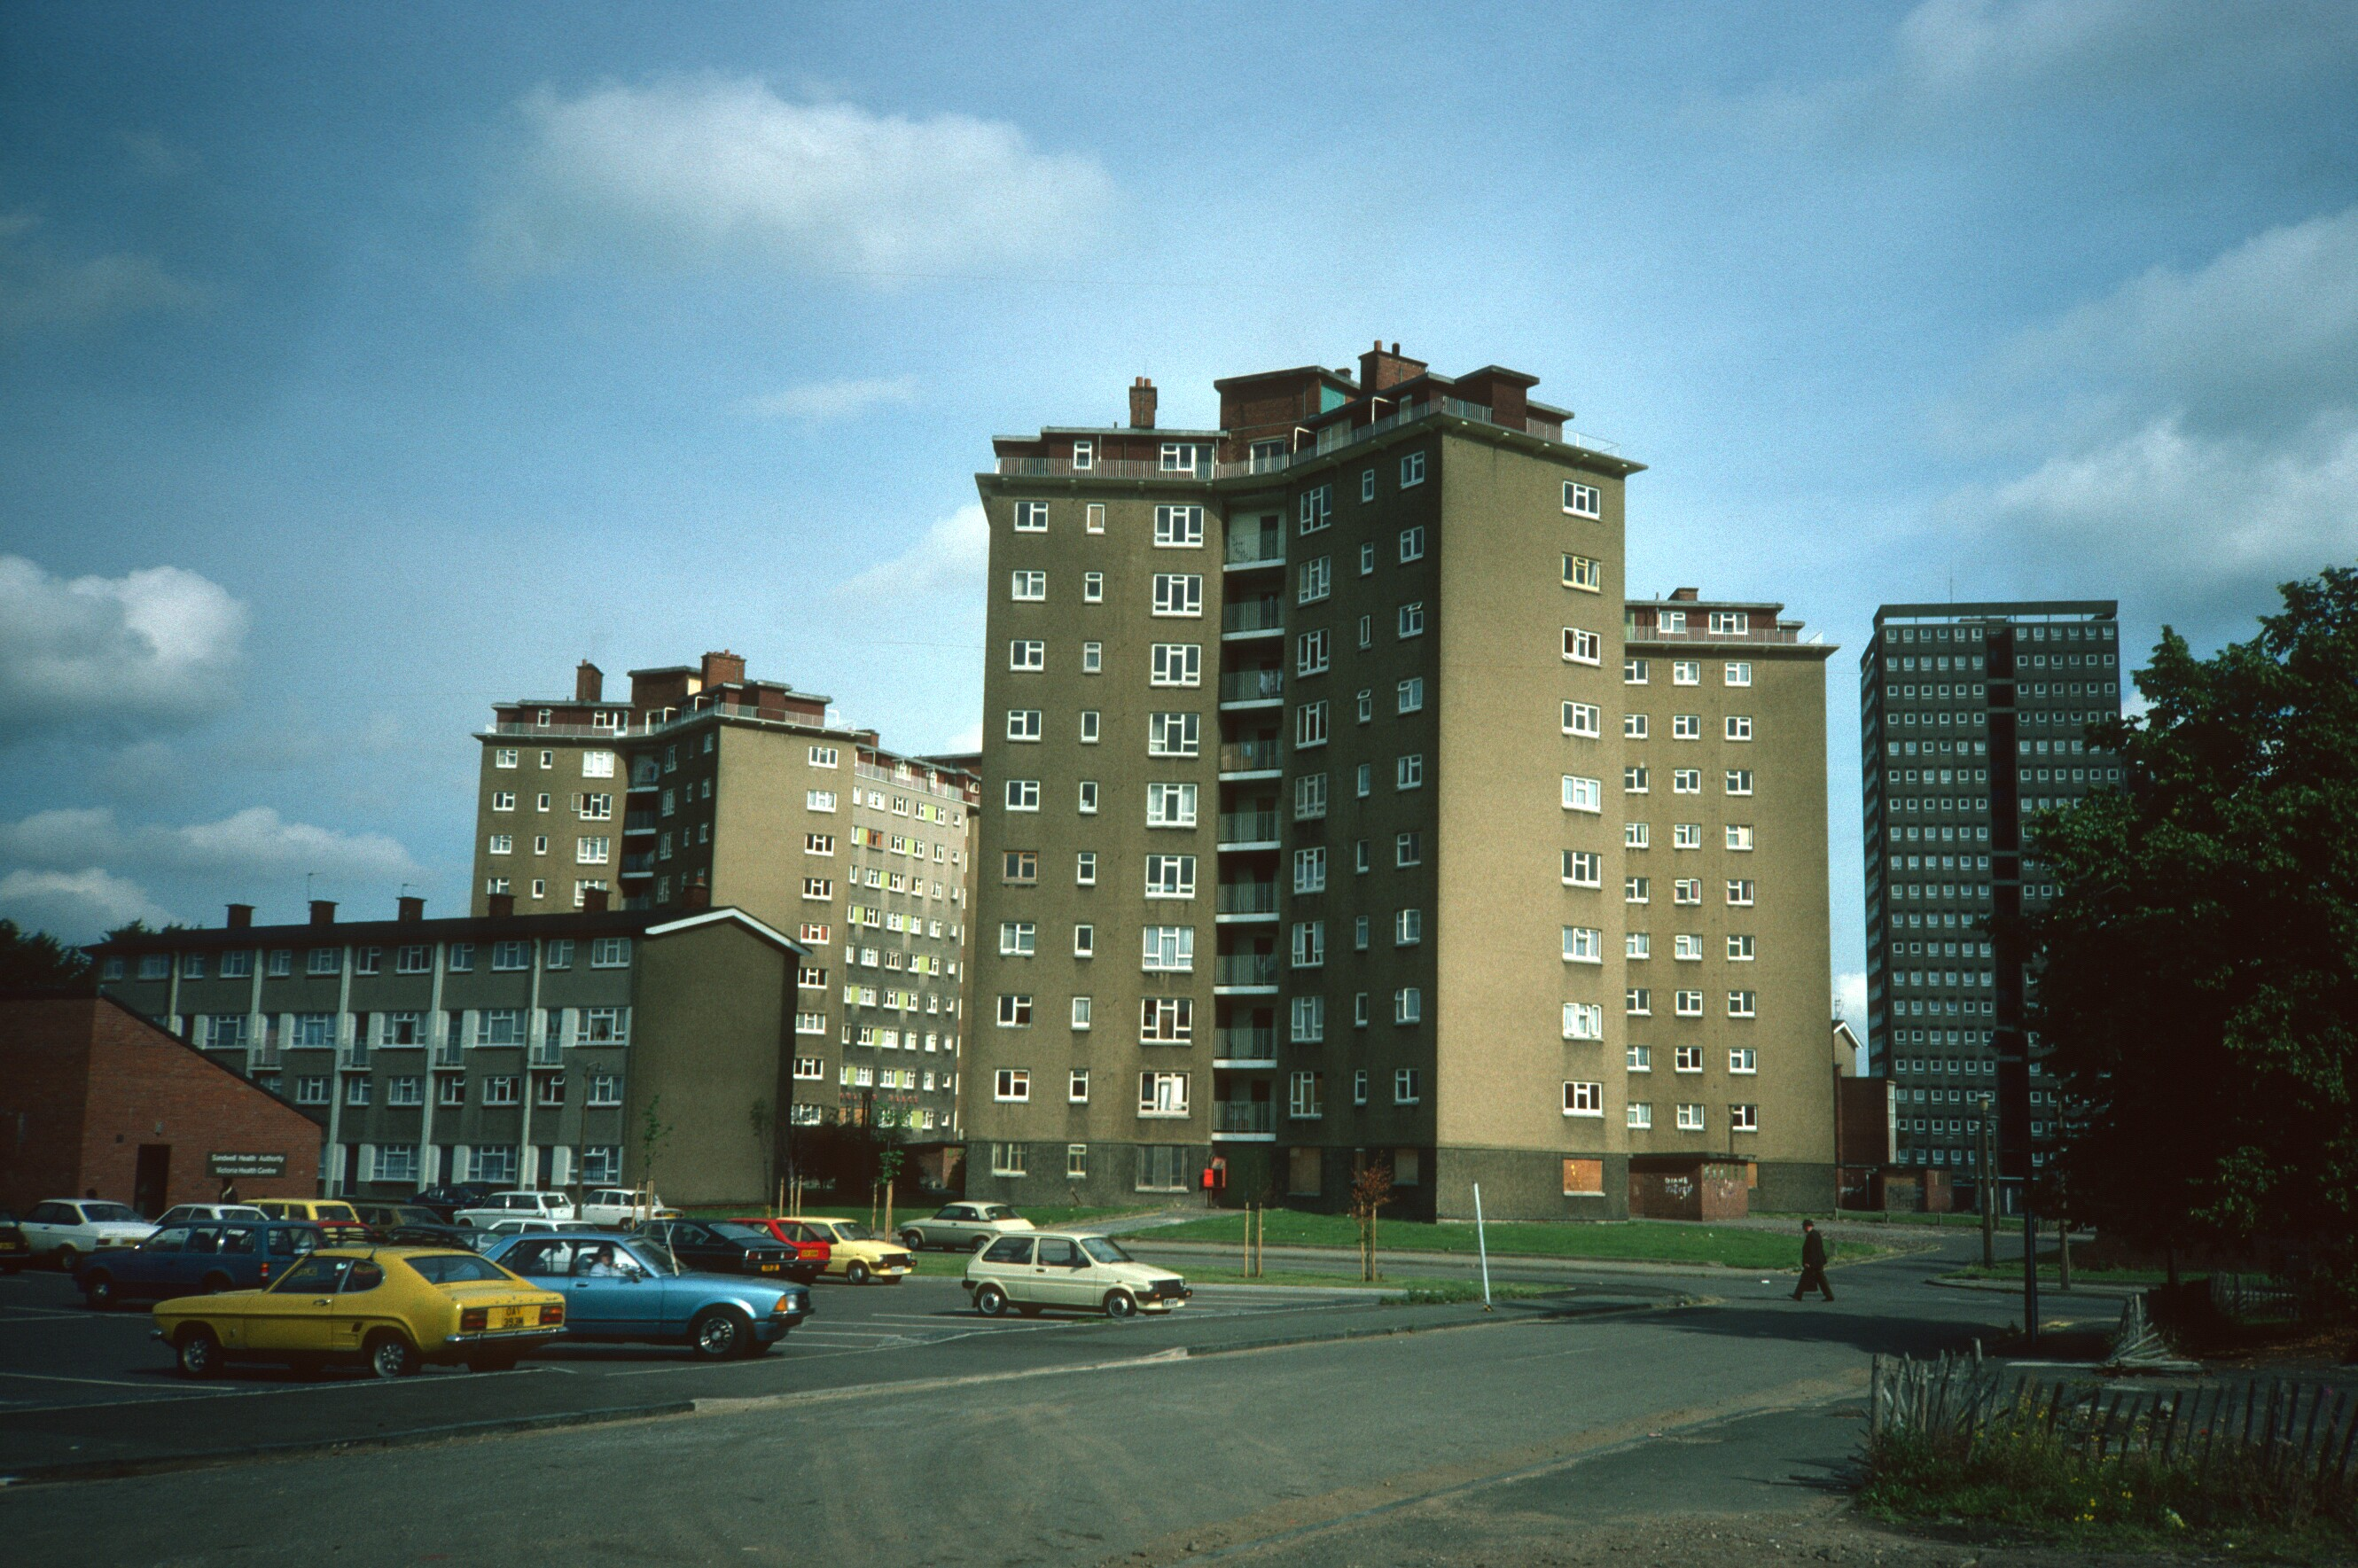 <p>View of Murdoch Place and Boulton Place. Two 11-storey blocks containing 128 dwellings, built 1954, now demolished.</p>